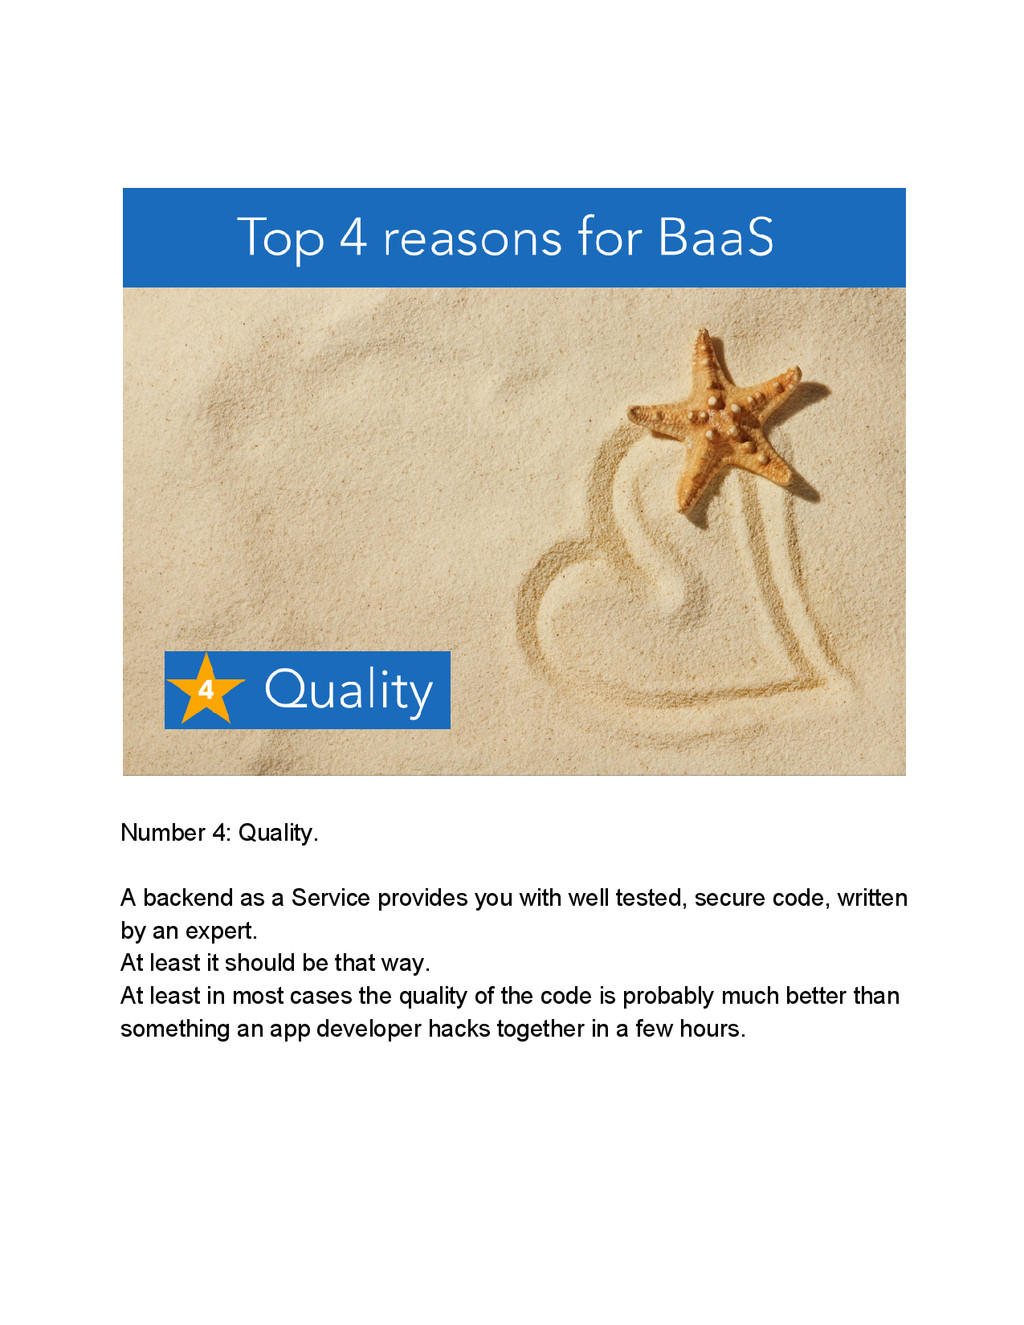 Number 4: Quality. A backend as a Service provi...